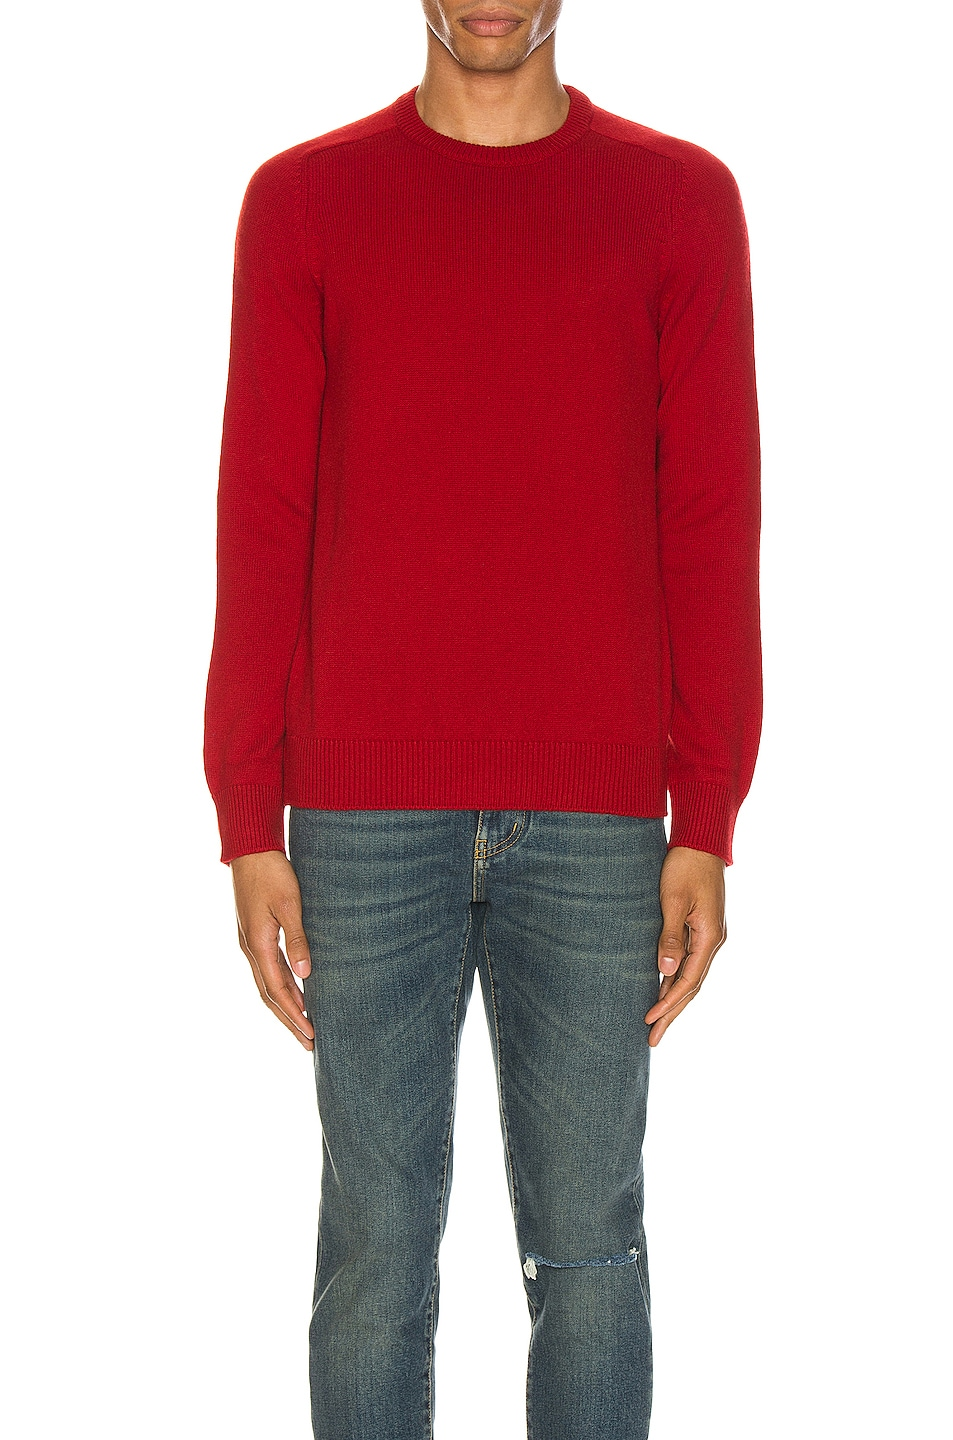 Image 1 of Saint Laurent Cashmere Sweater in Red